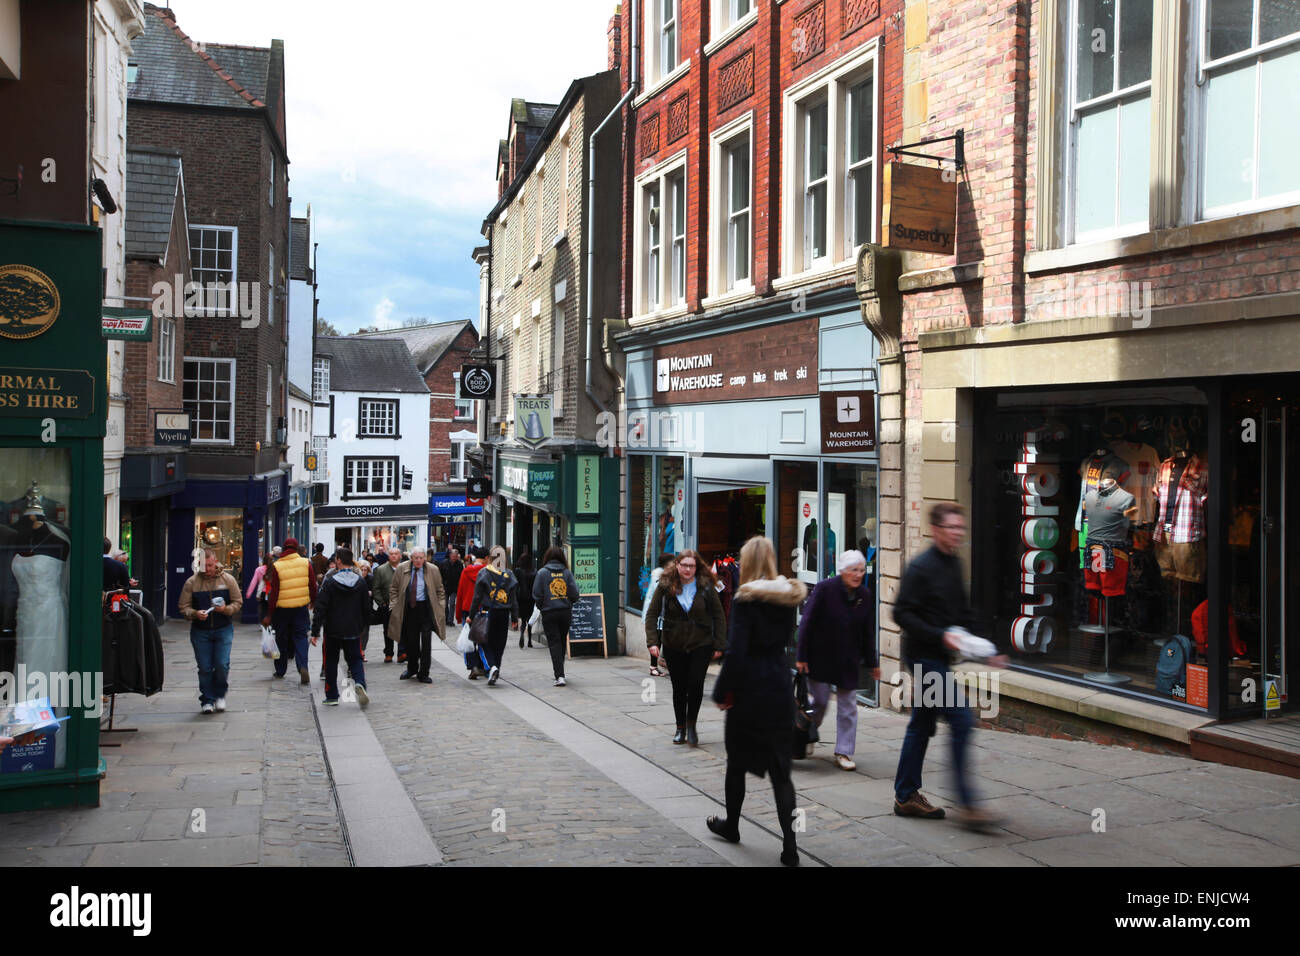 Shopping In Durham City Centre Stock Photo 82154496 Alamy